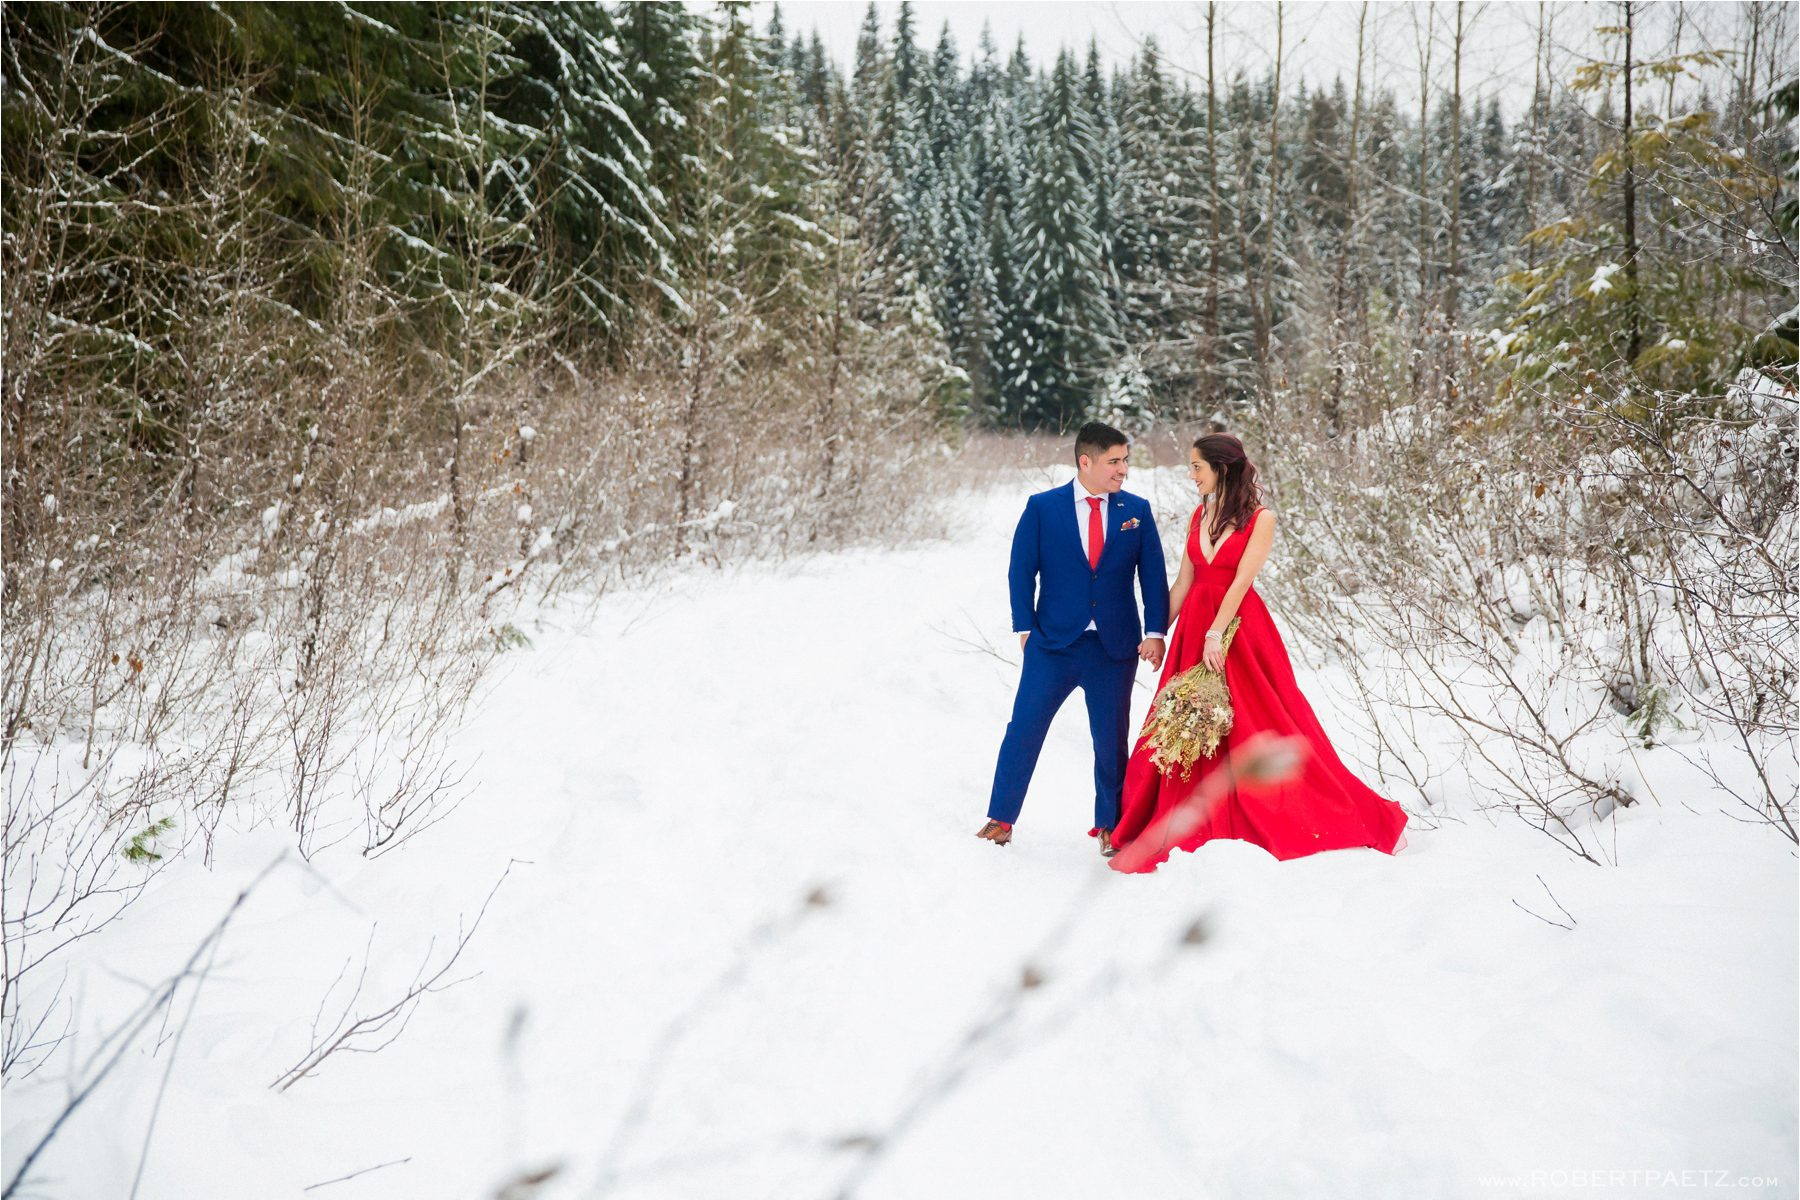 A winter themed seattle engagement photography session taken in the snow and downtown by the west coast wedding photographer, Robert Paetz.